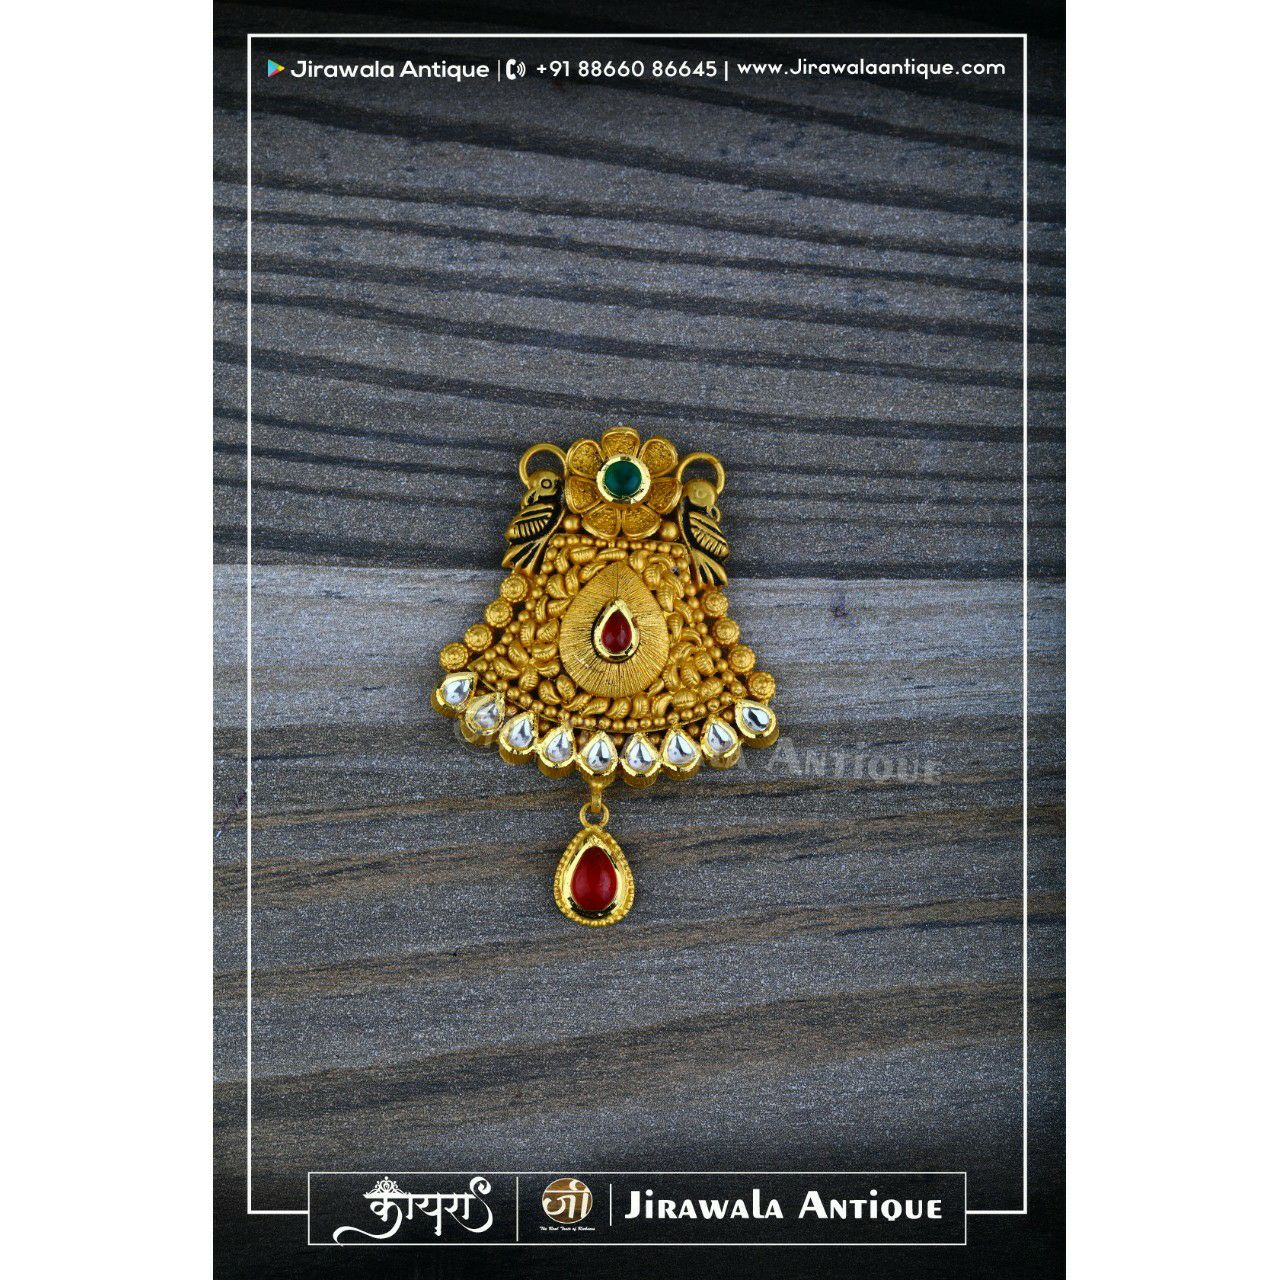 Antique Jadtar Mangalsutra Peandat With Peacock Design